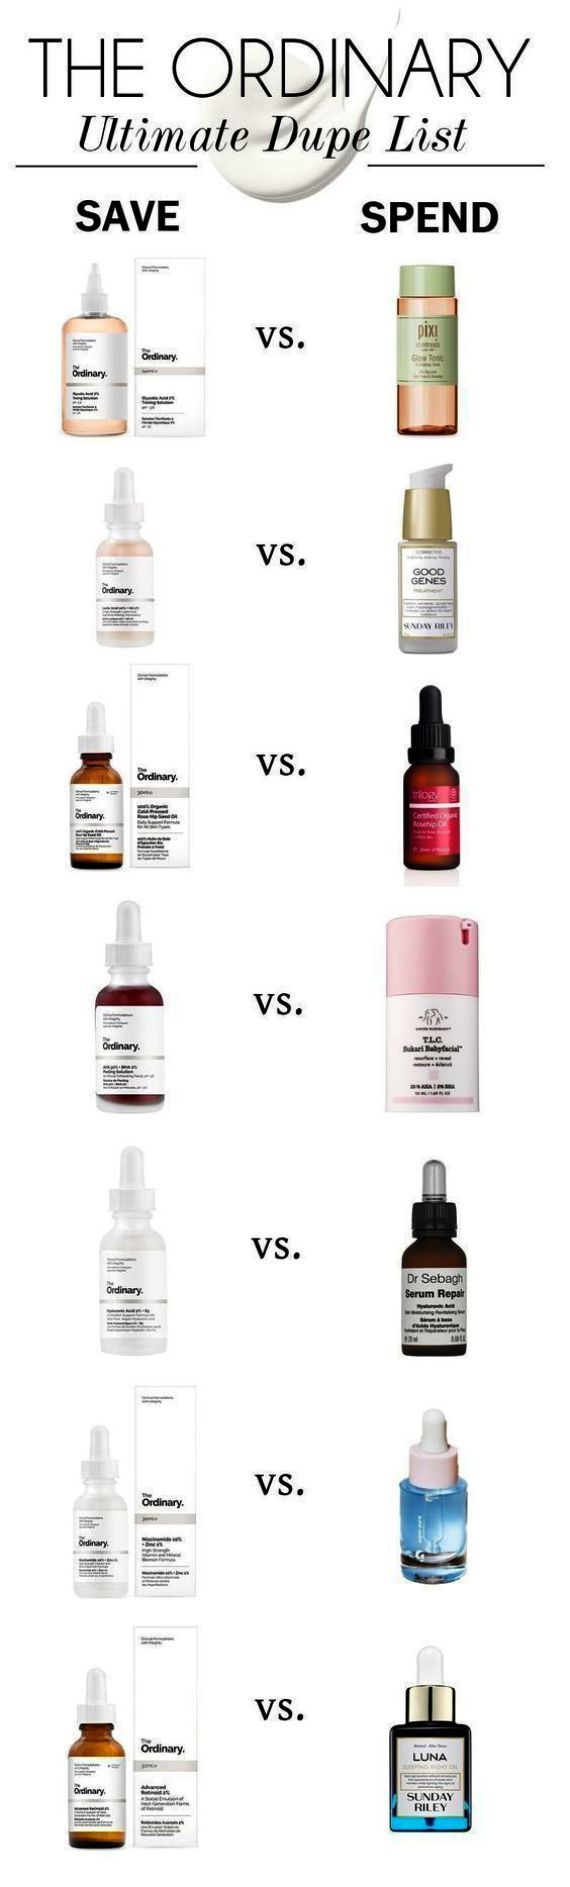 Skincare Ingredients To Not Mix Skincare Routine Sunscreen This Skincarerx Brands Though Skincare R Skincare Dupes The Ordinary Dupes Beauty Skin Care Routine